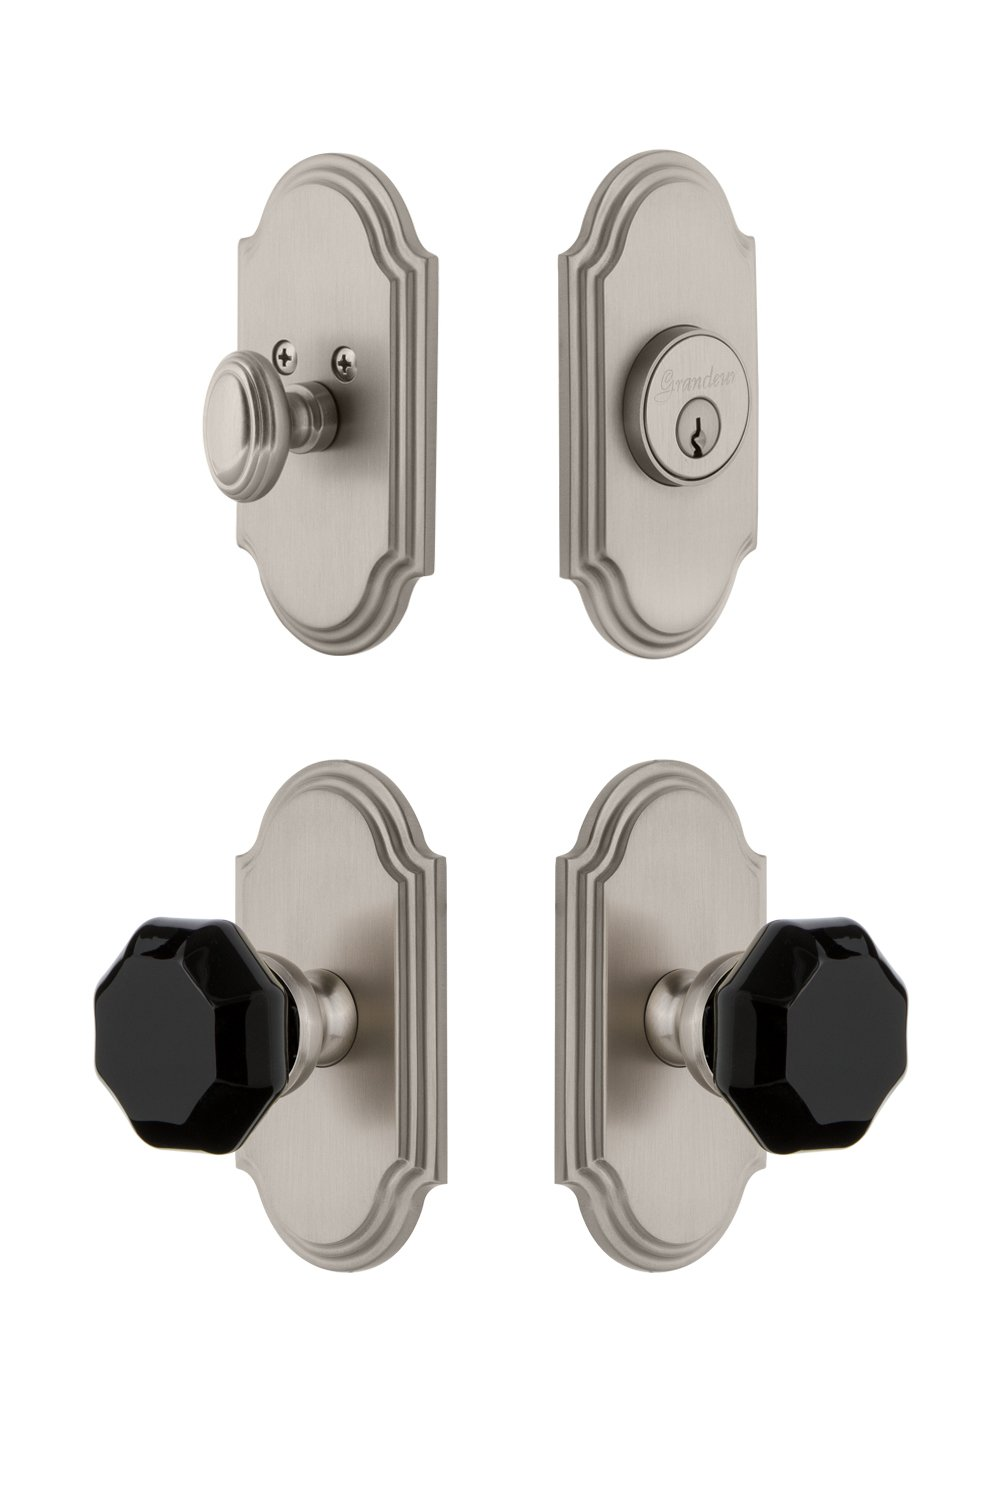 Grandeur Hardware 851099 Arc Plate with Lyon Knob and Matching Deadbolt Combo Pack Backset Size 2.75 Polished Nickel